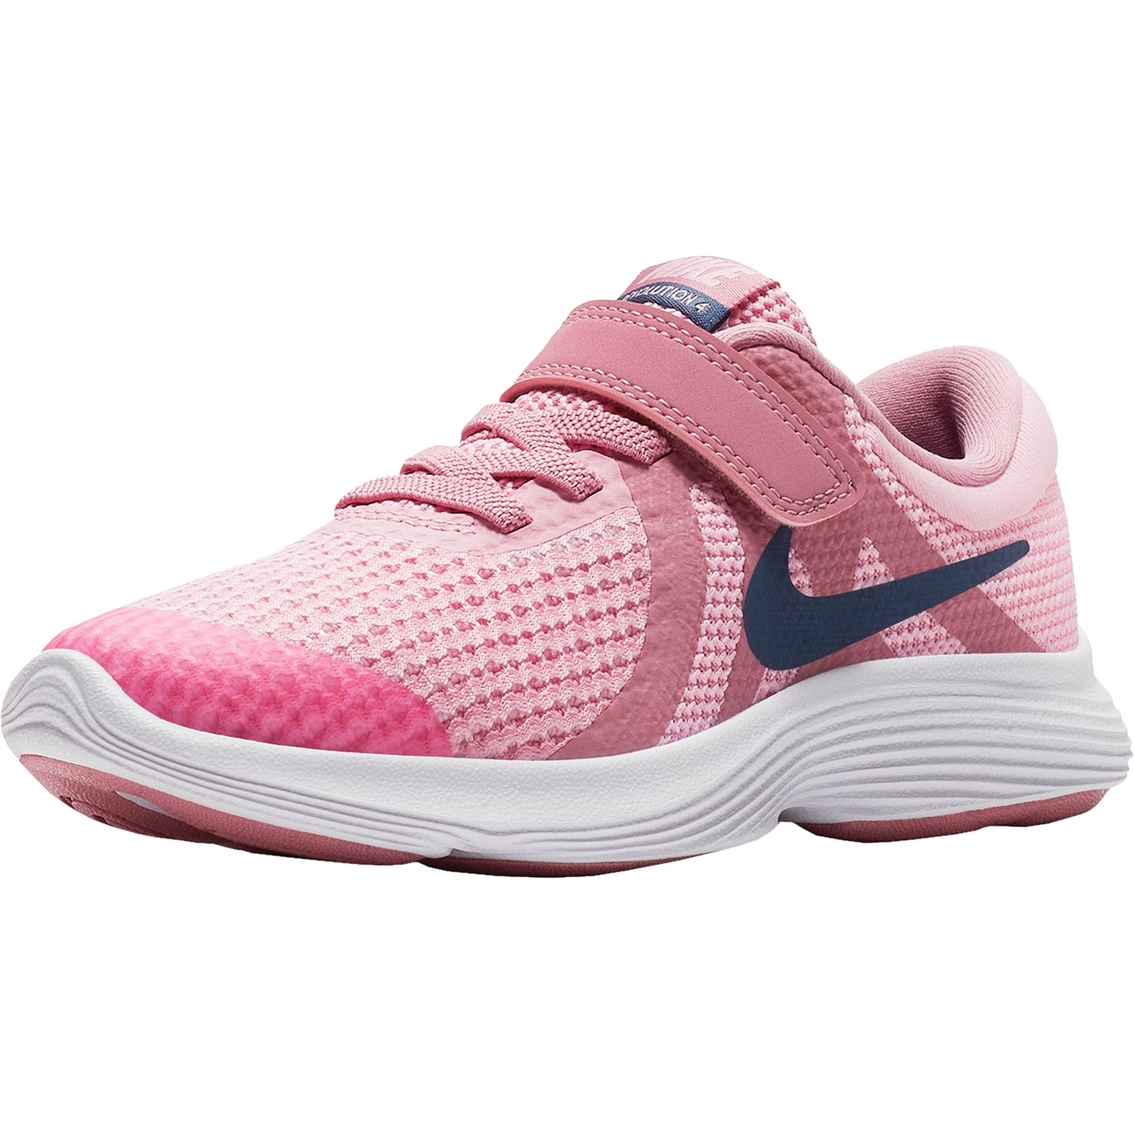 756761188e45 Nike Preschool Girls Revolutions 4 Running Shoes